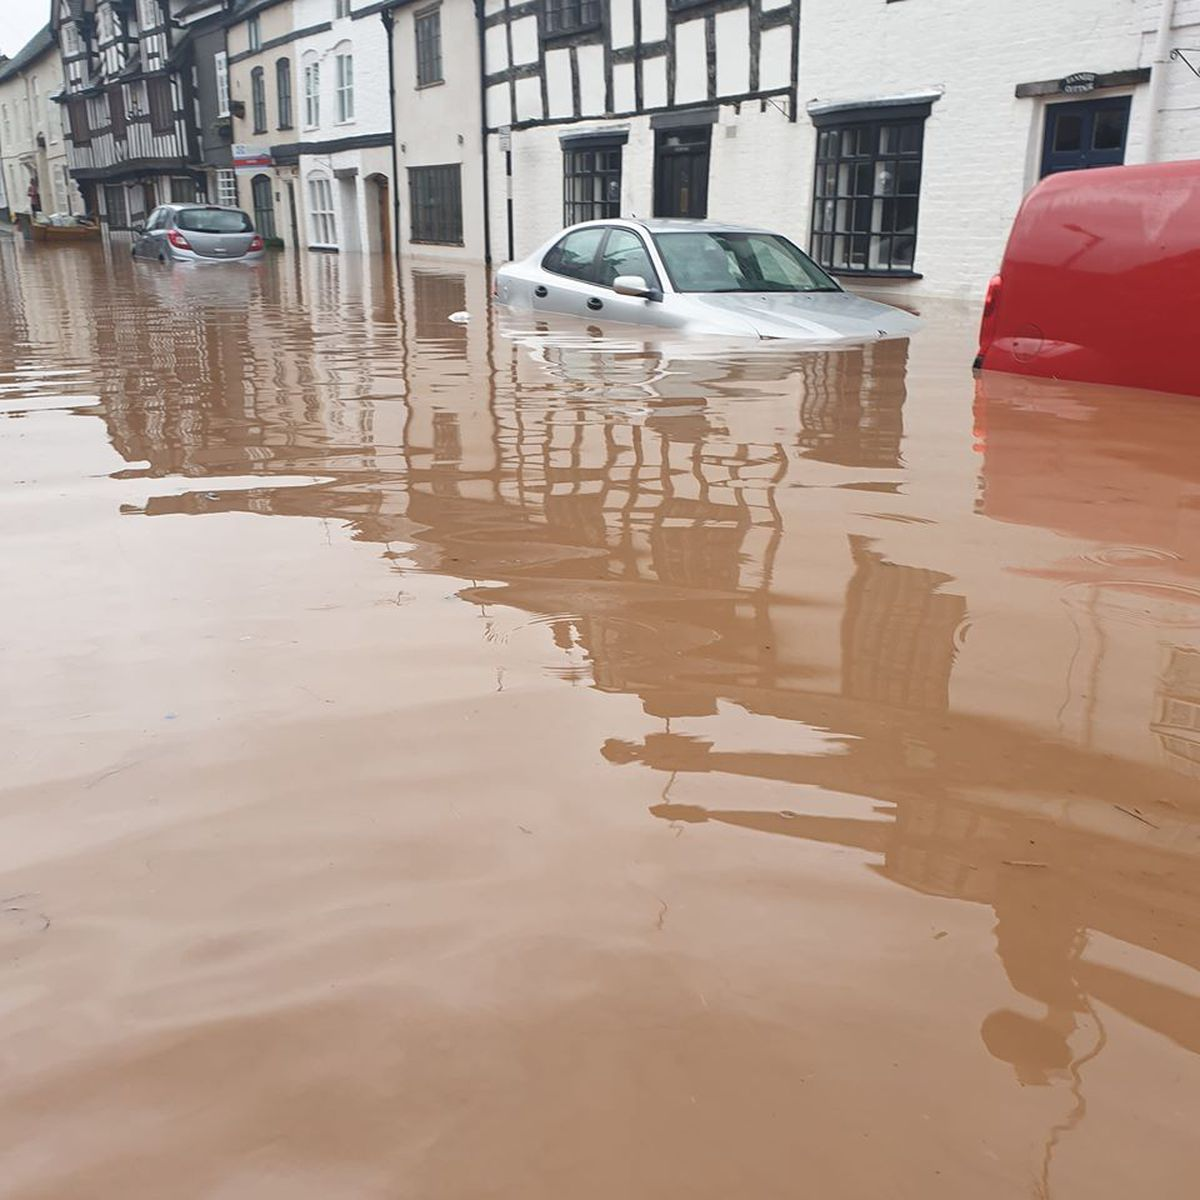 Storm Dennis flooding in Ludlow town centre. Photo: Karokh Mamakura